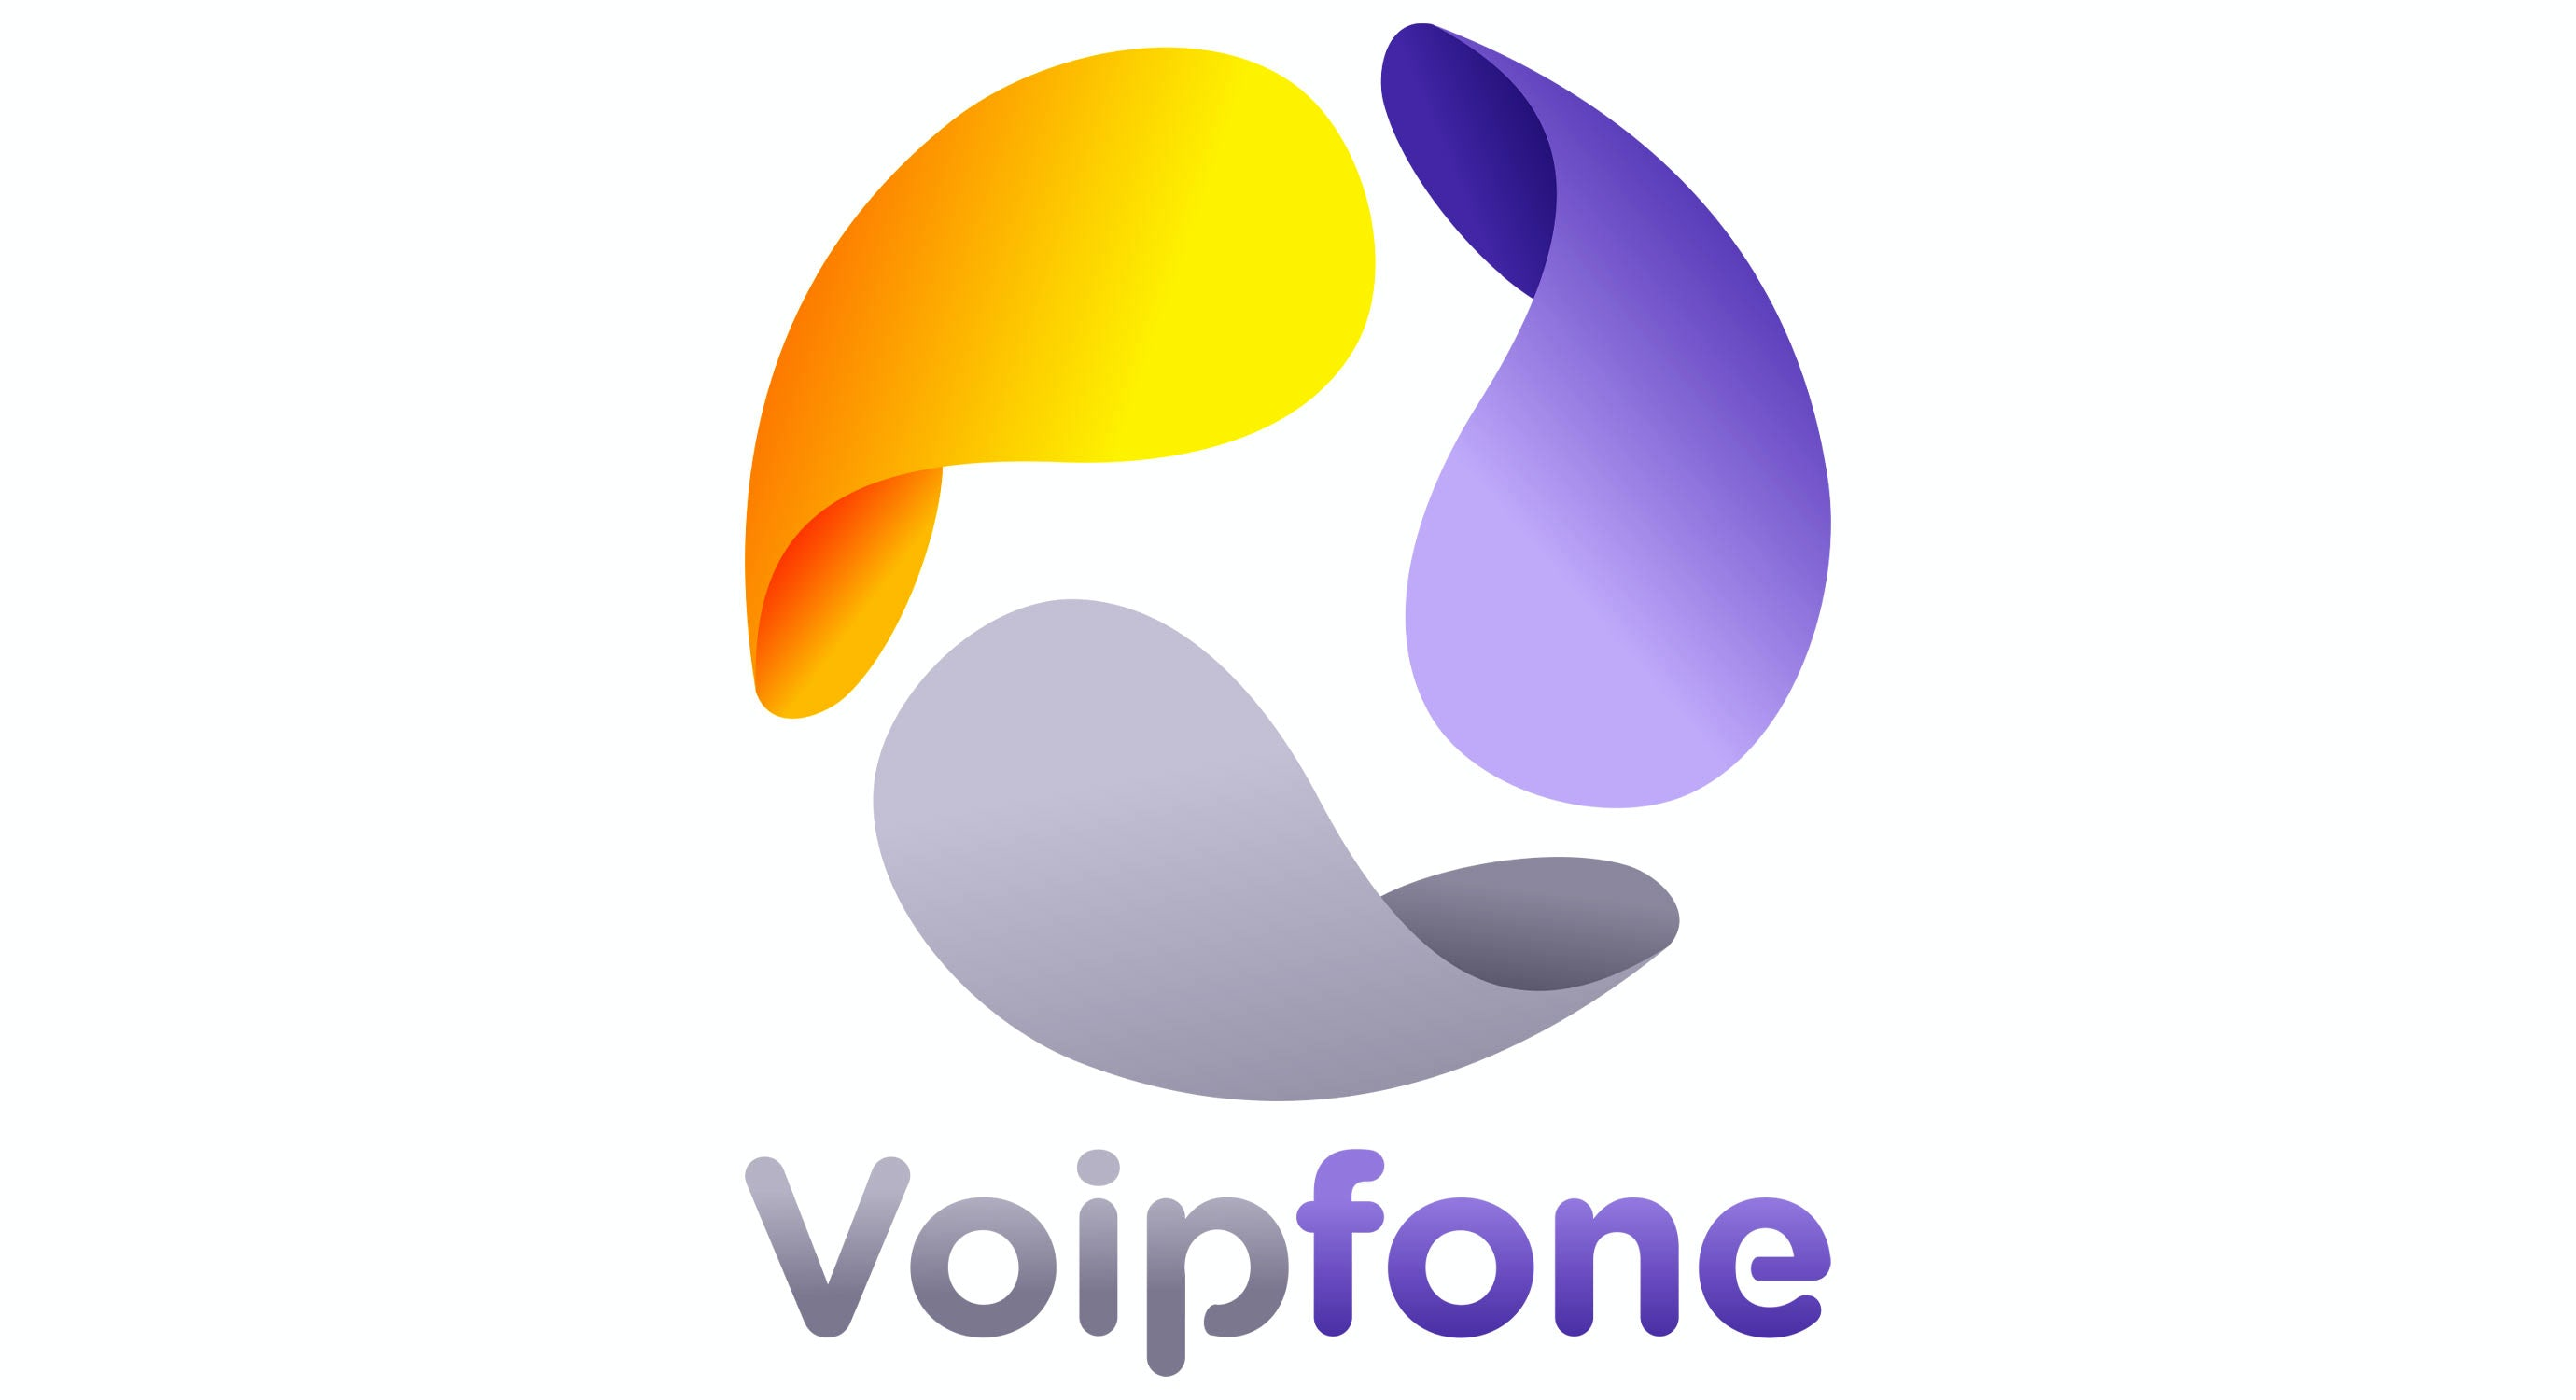 Voipfone - Everything You Need to Know in 2020